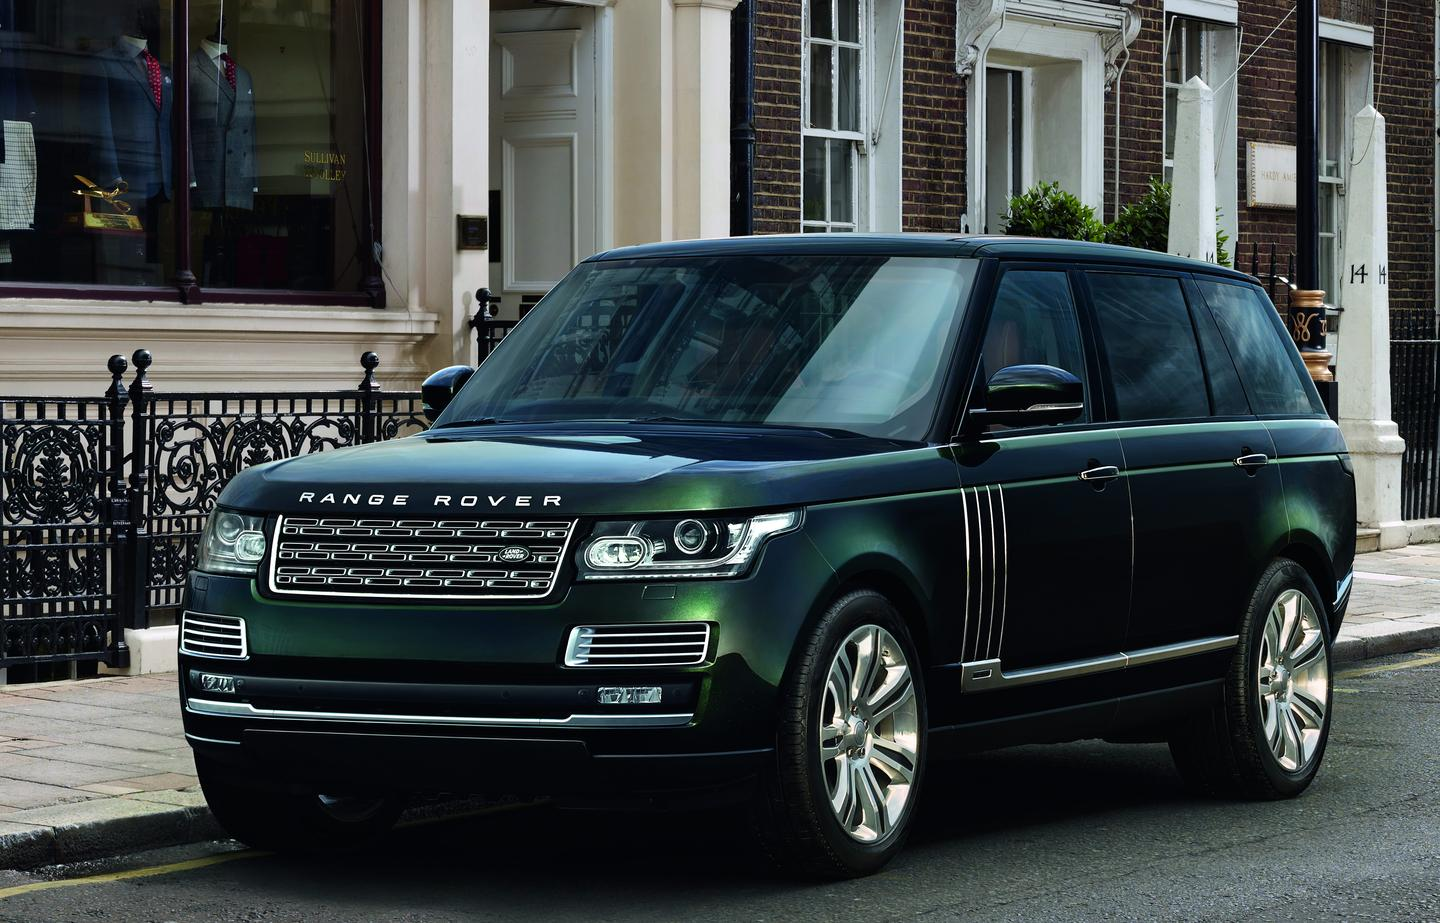 The Holland & Holland Range Rover is based on the Range Rover Autobiography Black